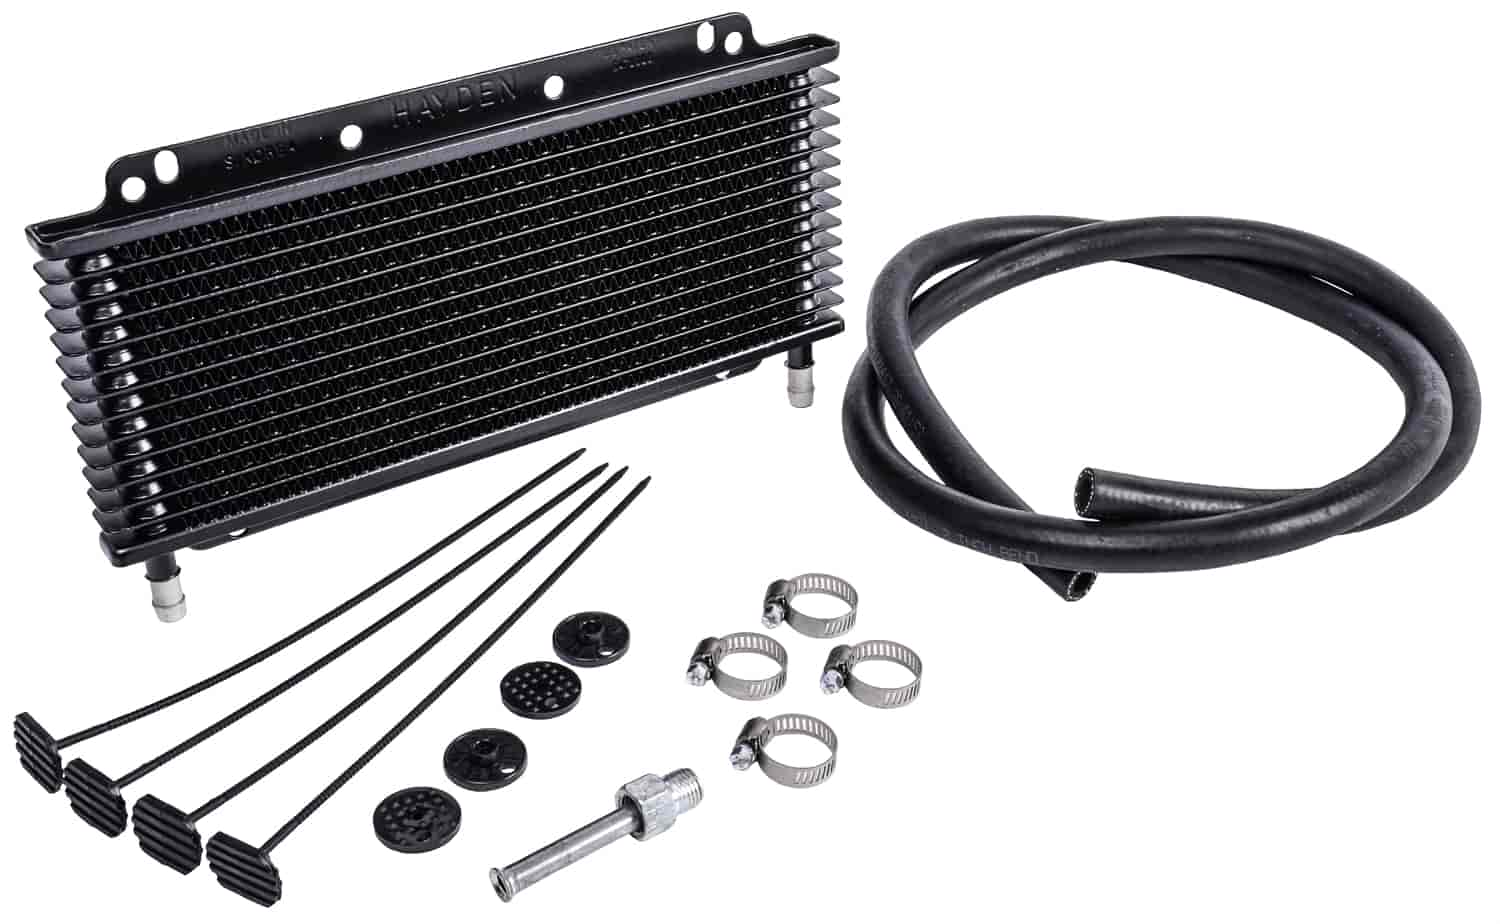 2032869 New Trans Cooler What Ya Think on faq about engine transmission coolers